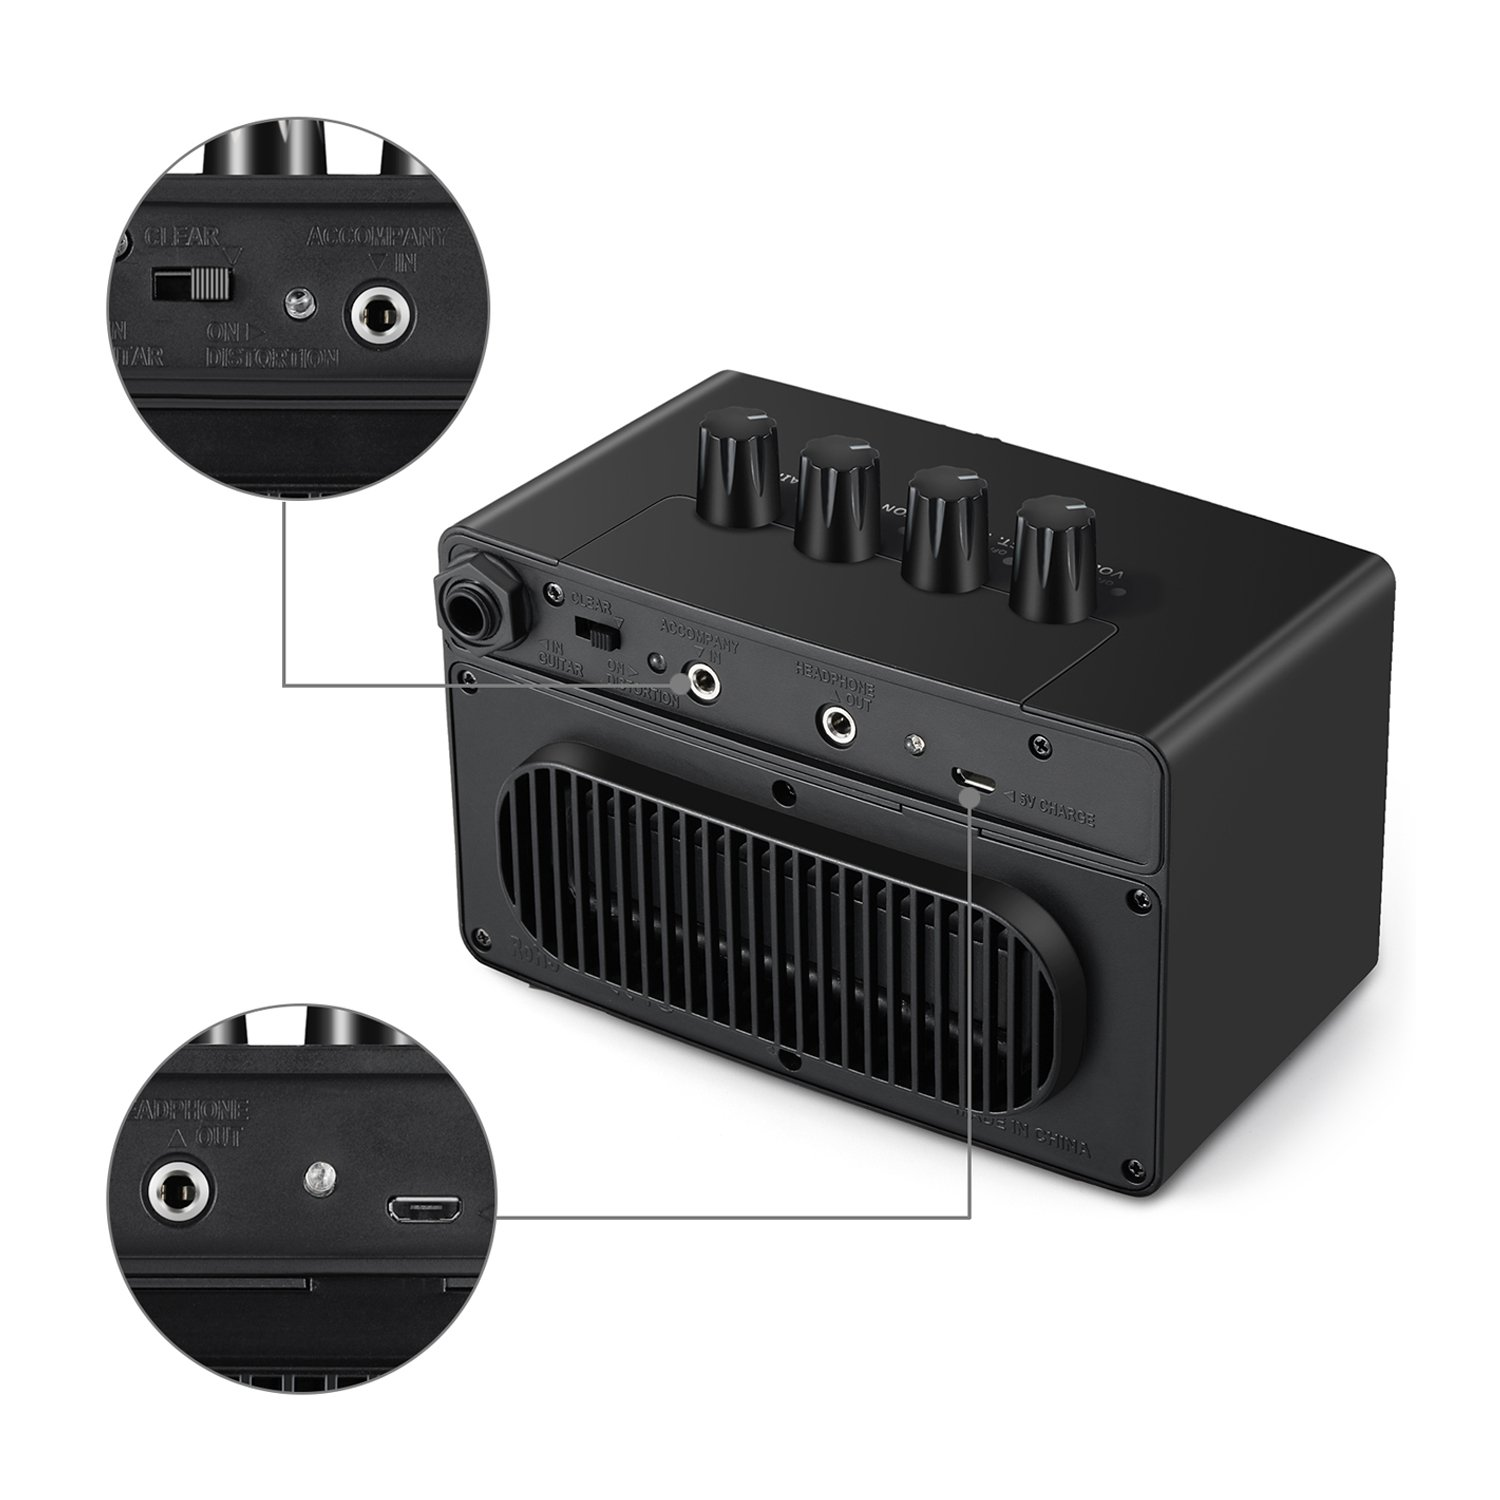 Aux ports on The Donner 3W Mini Rechargeable Amp